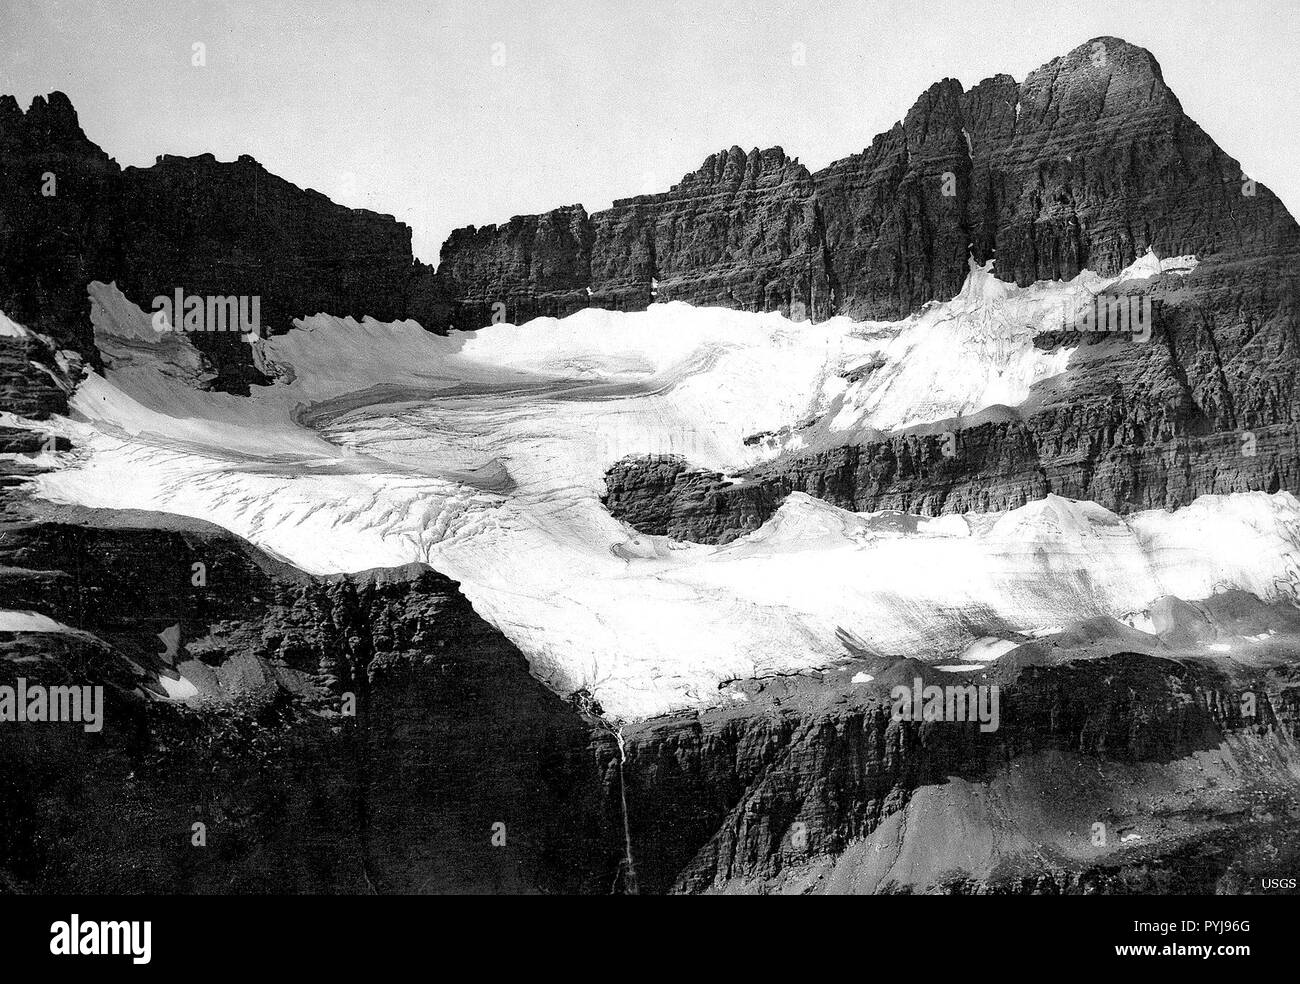 Shepard Glacier — Well-defined boundaries and crevasses are apparent in this photo of Shepard Glacier, Montana when its mass filled the cirque in 1913. - Stock Image